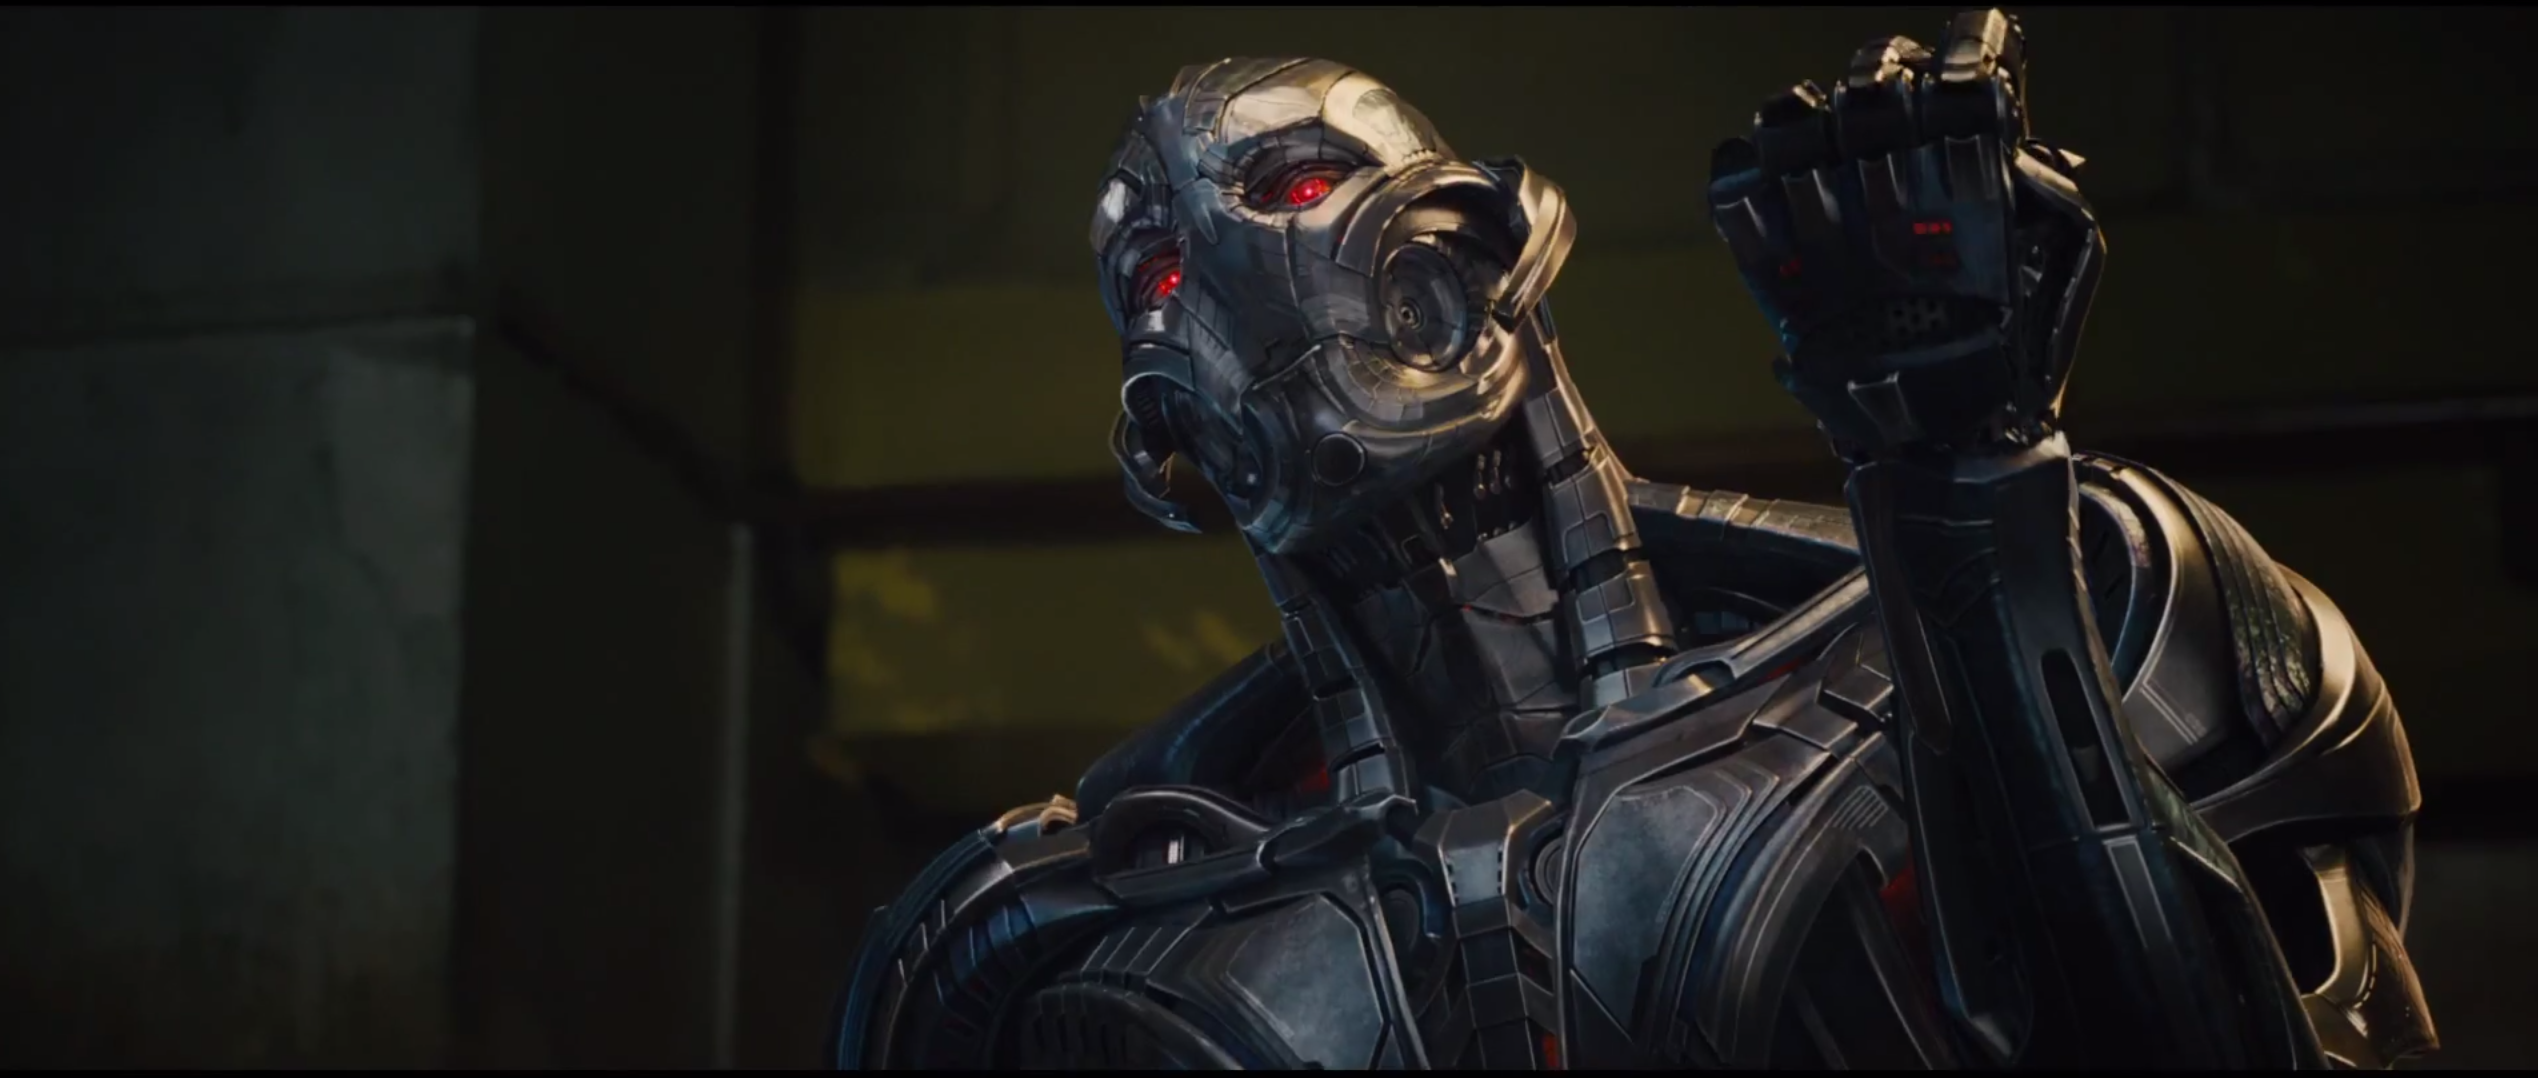 Avenger Age Of Ultron Sketch: Time To Assemble! Marvel's Avengers: Age Of Ultron: Review